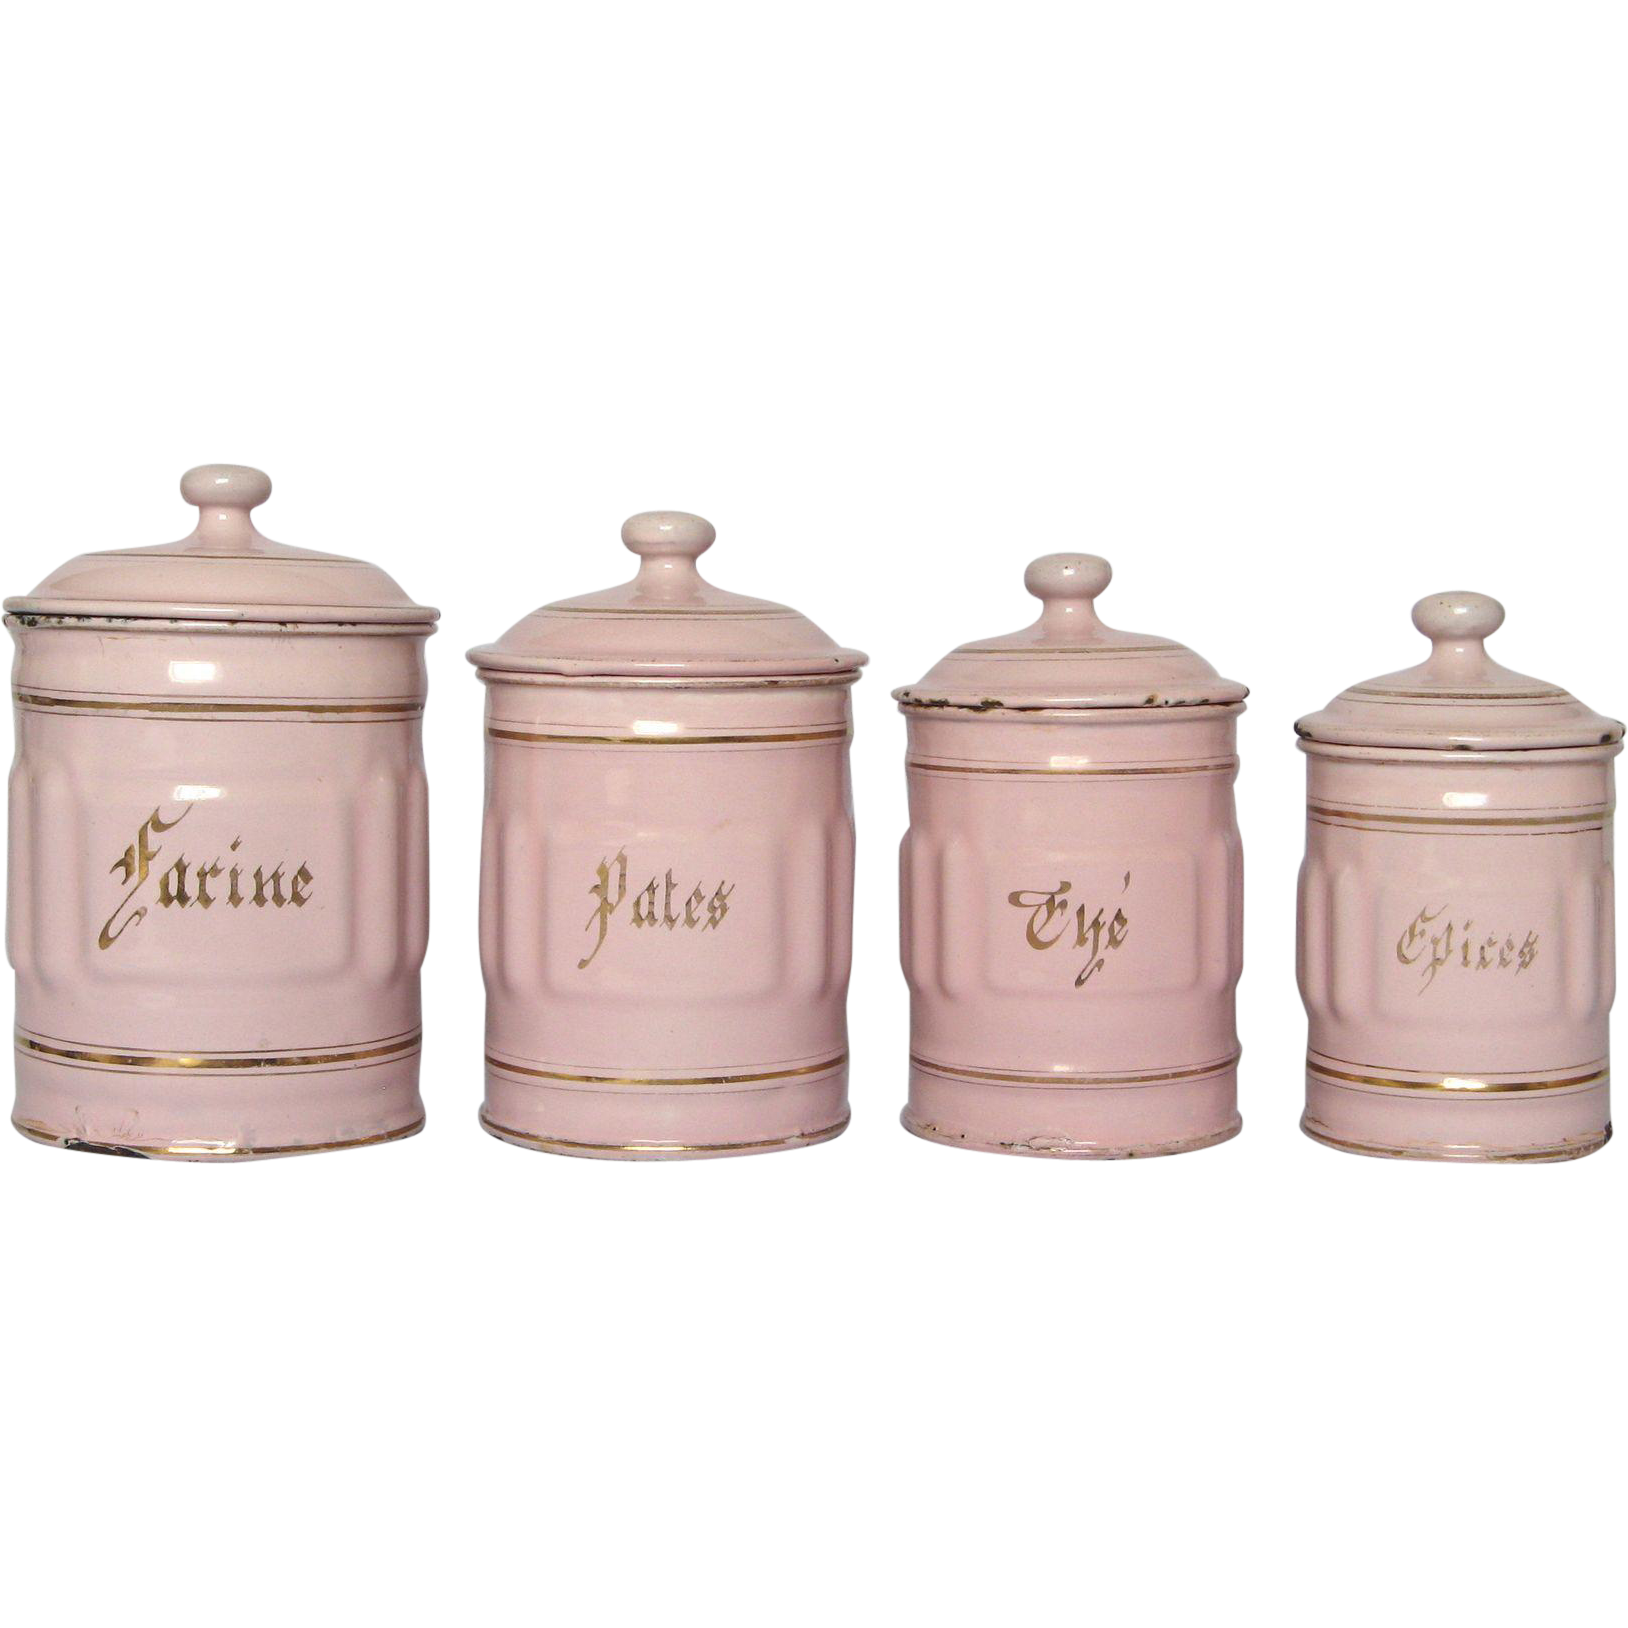 pink kitchen canisters pink enamel french graniteware kitchen canisters from yesterdaysfrance on ruby lane 8002